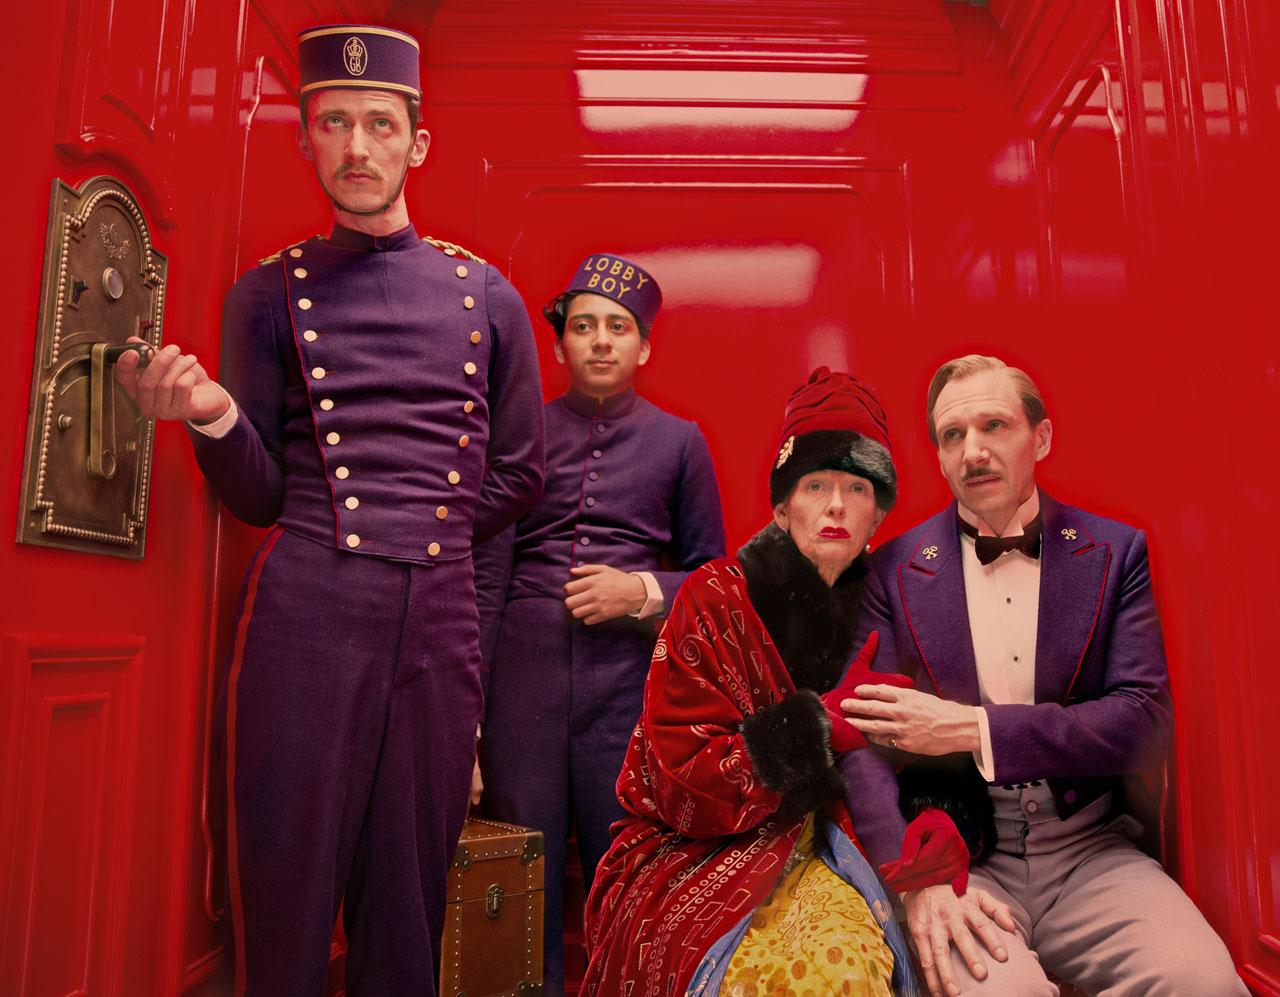 the grand budapest hotel-Official Poster Banner PROMO PHOTO-16DEZEMBRO2013